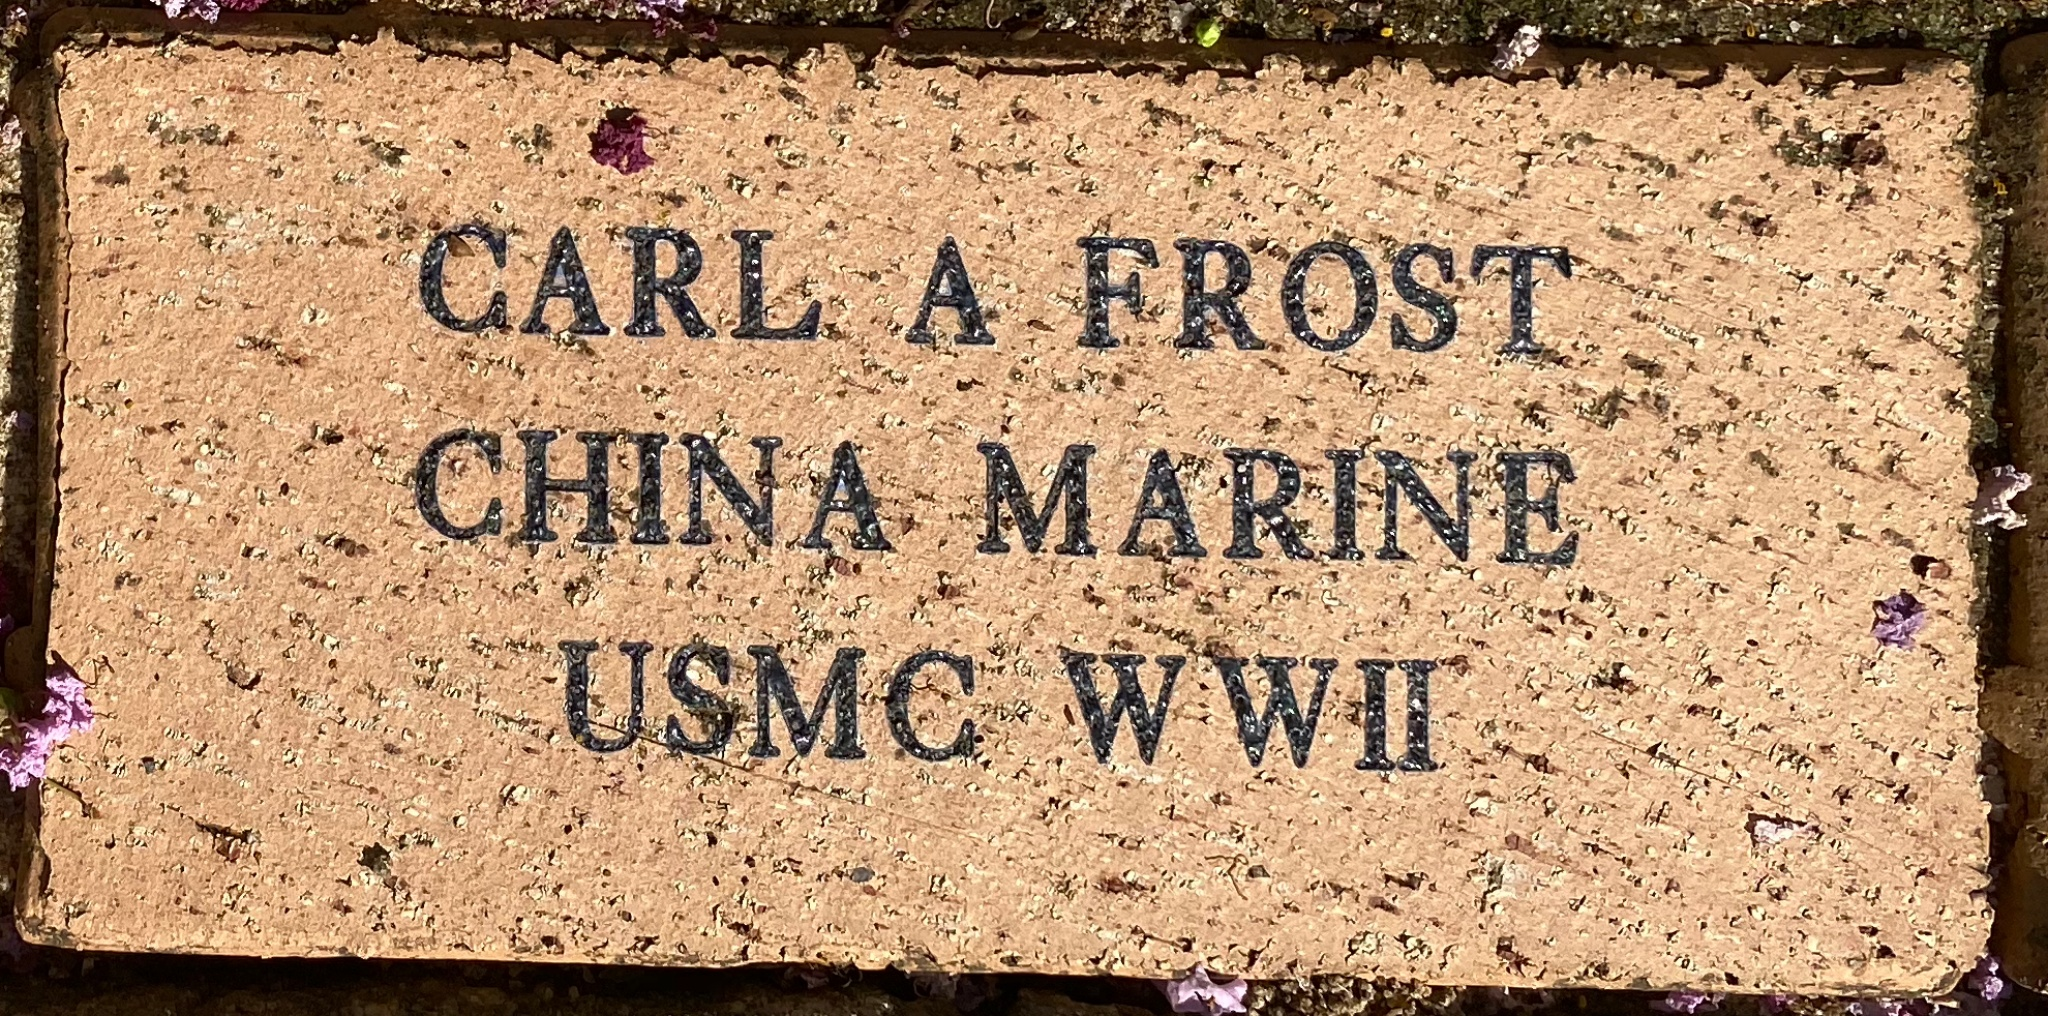 CARL A FROST CHINA MARINE USMC WWII